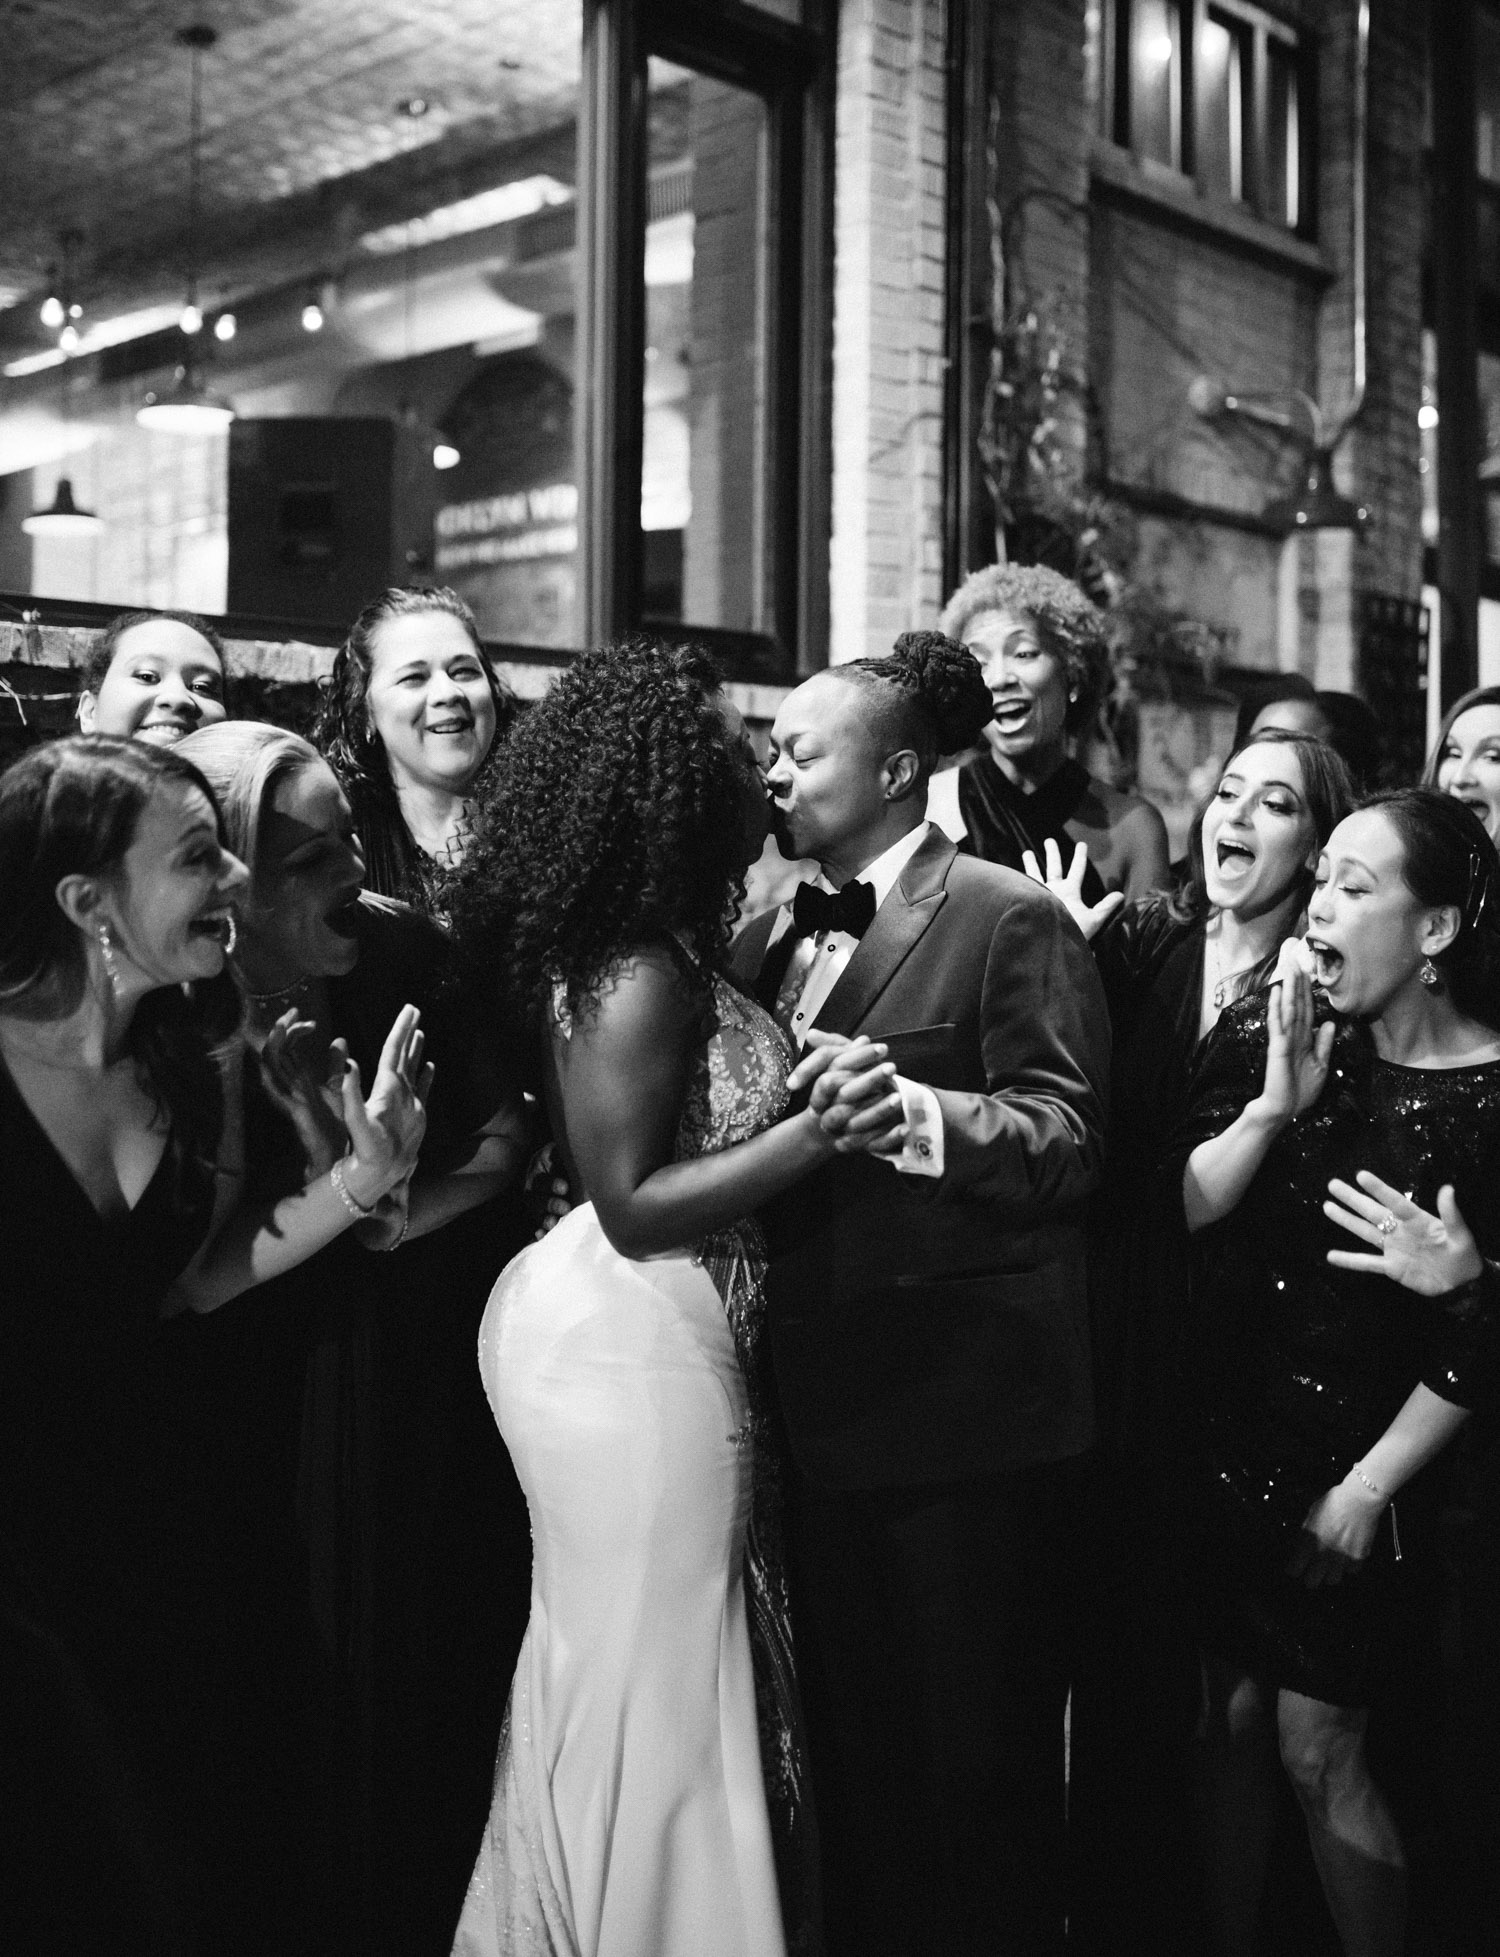 A black lesbian wedding couple is surrounded by cheering and smiling friends as they kiss outside Brooklyn Winery on their winter wedding day in New York City